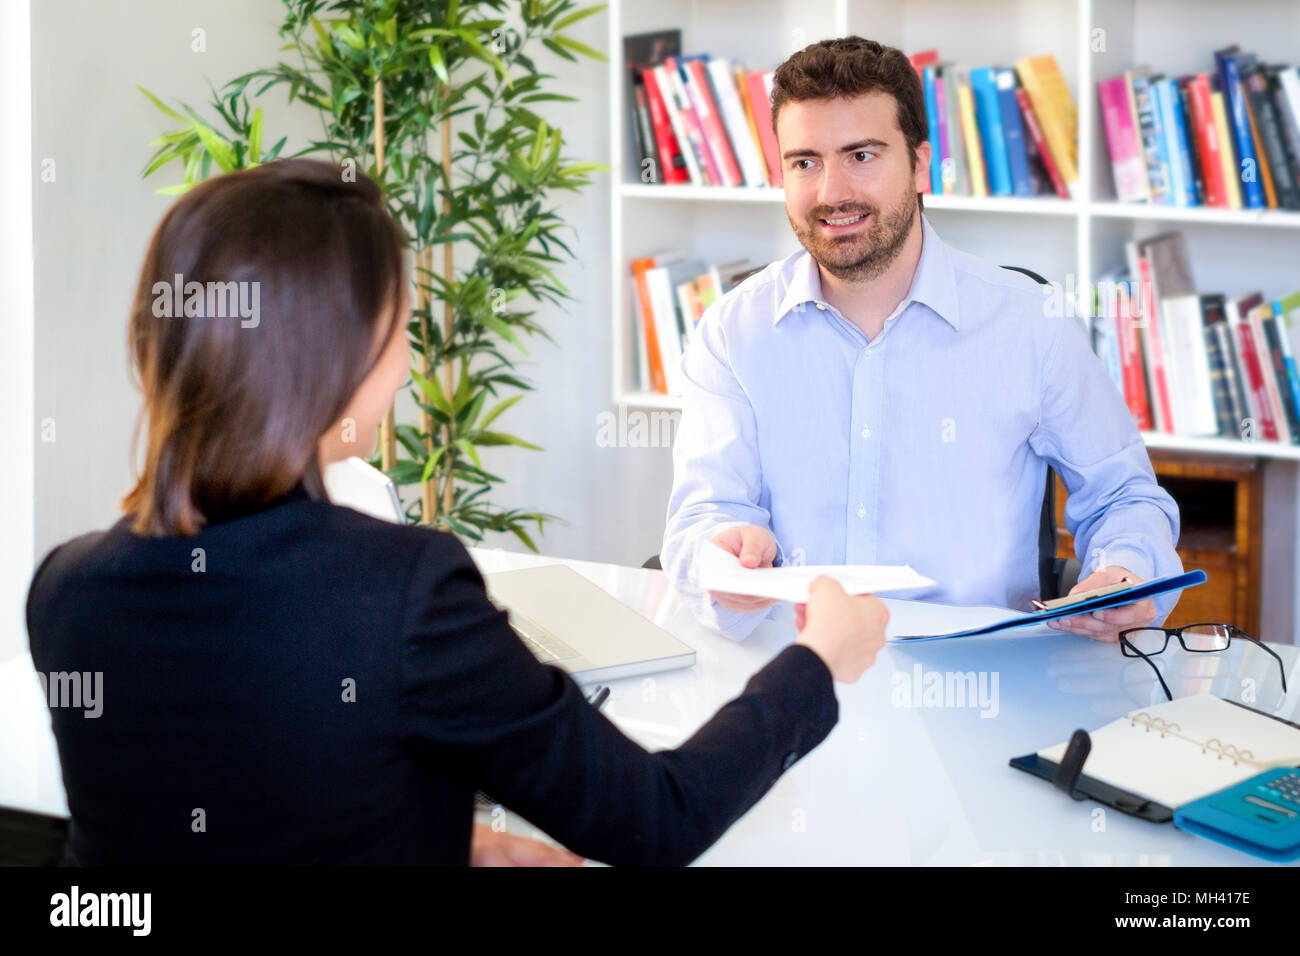 Young candidate showing his curriculum cv during successful job interview - Stock Image